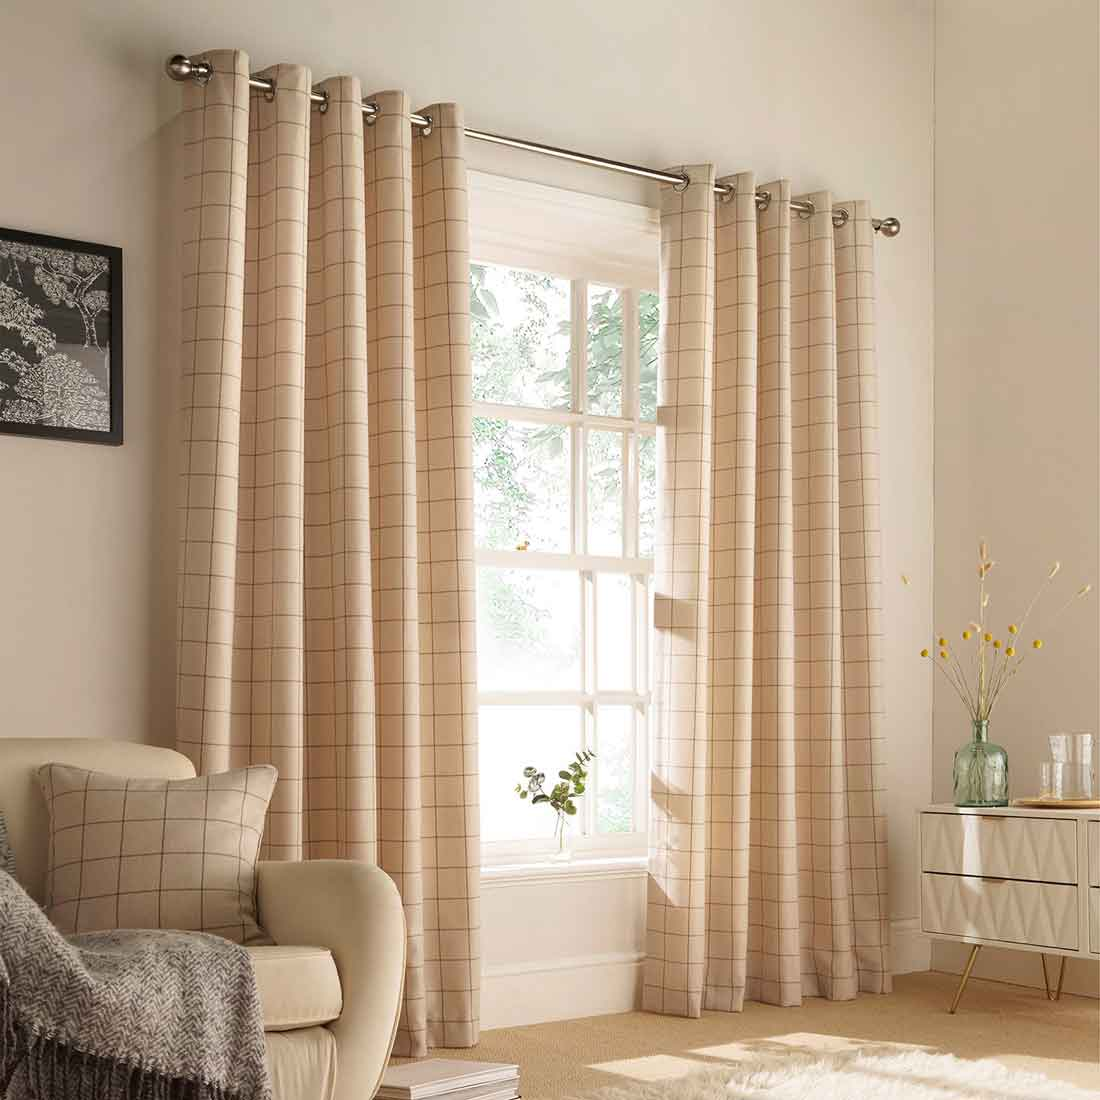 Ellis Natural Eyelet Curtains